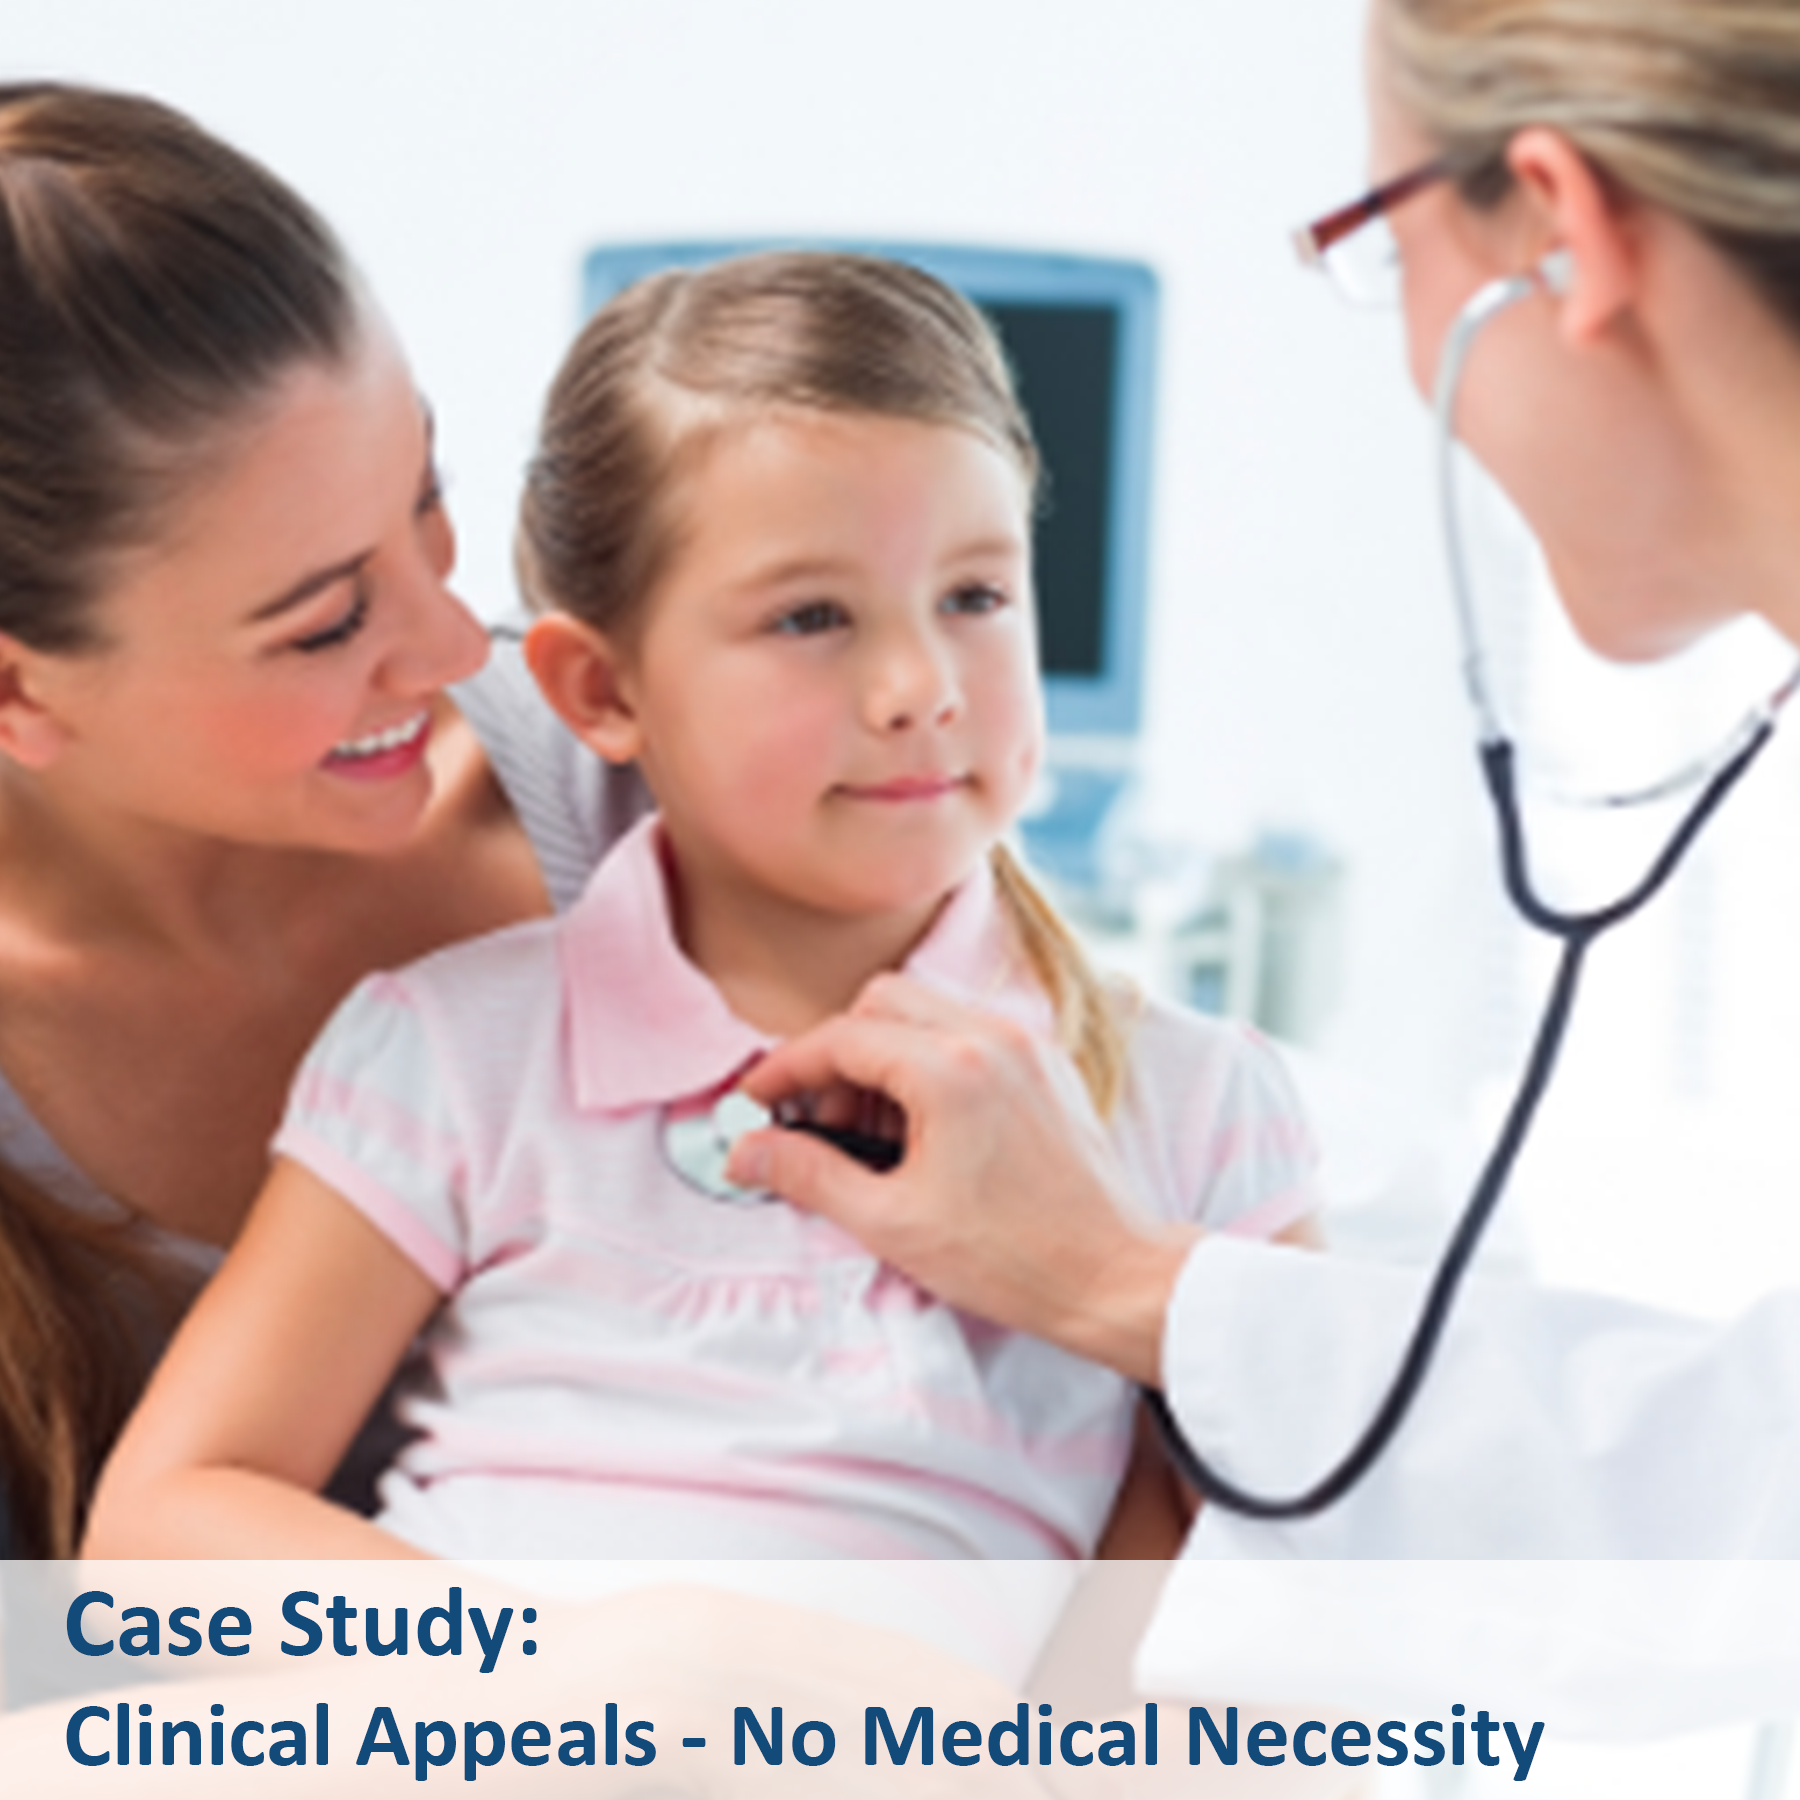 Case Study - Clinical Appeals - No Medical Necessity